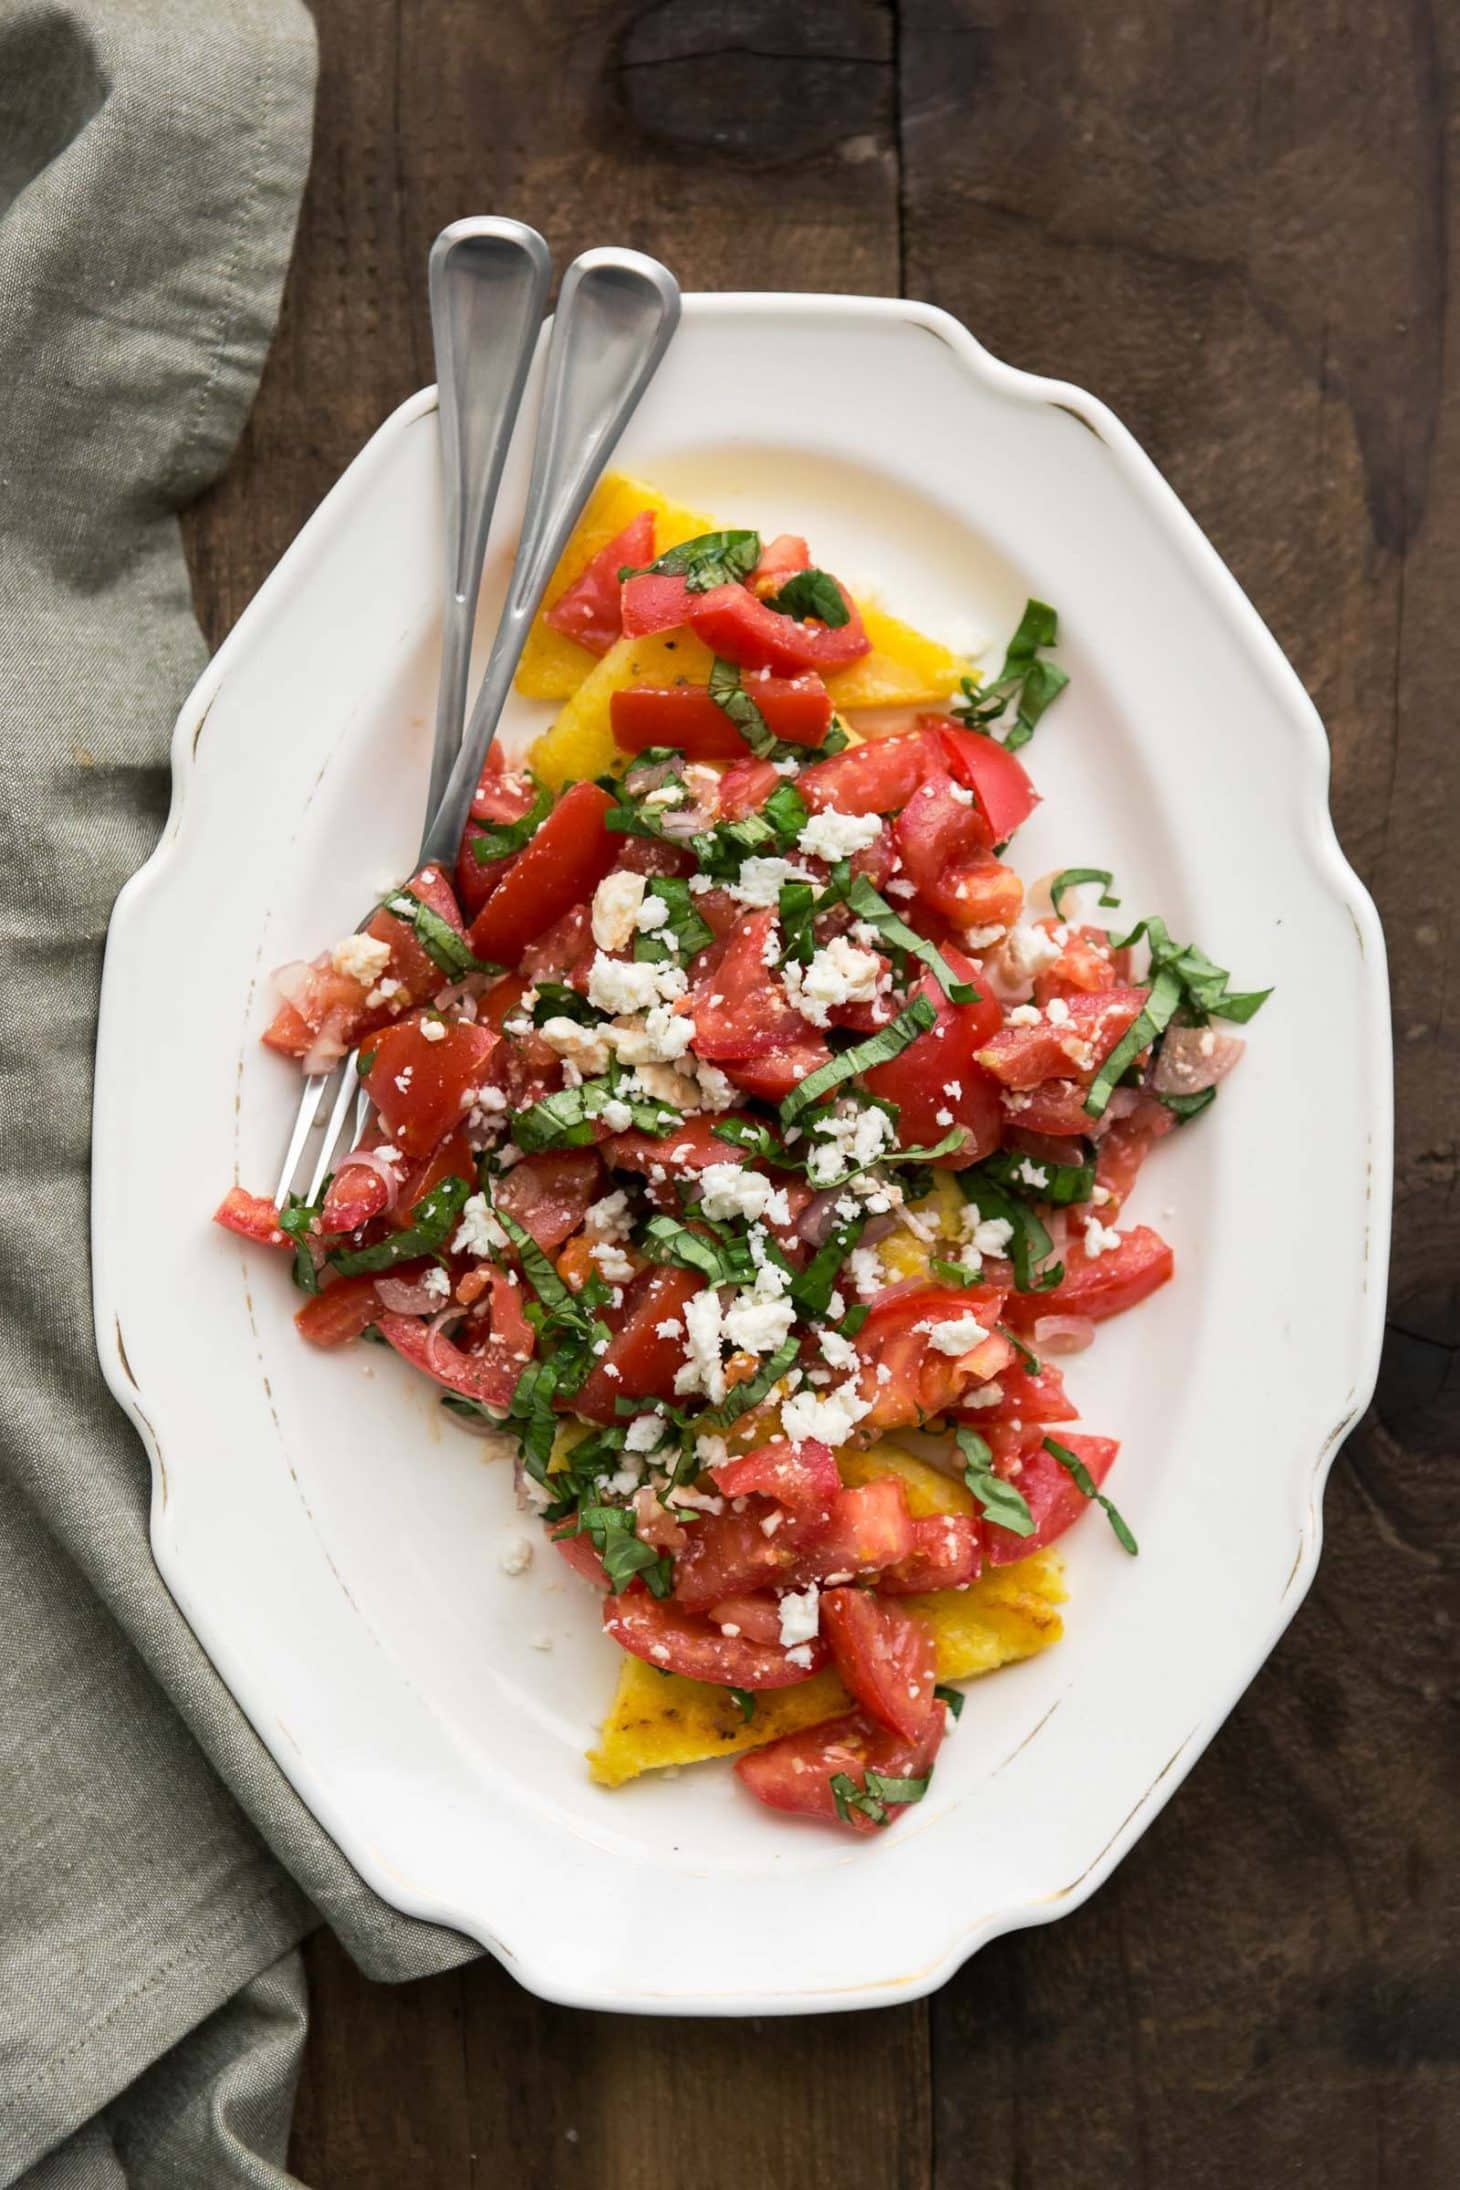 Fried Polenta with Tomato Salad